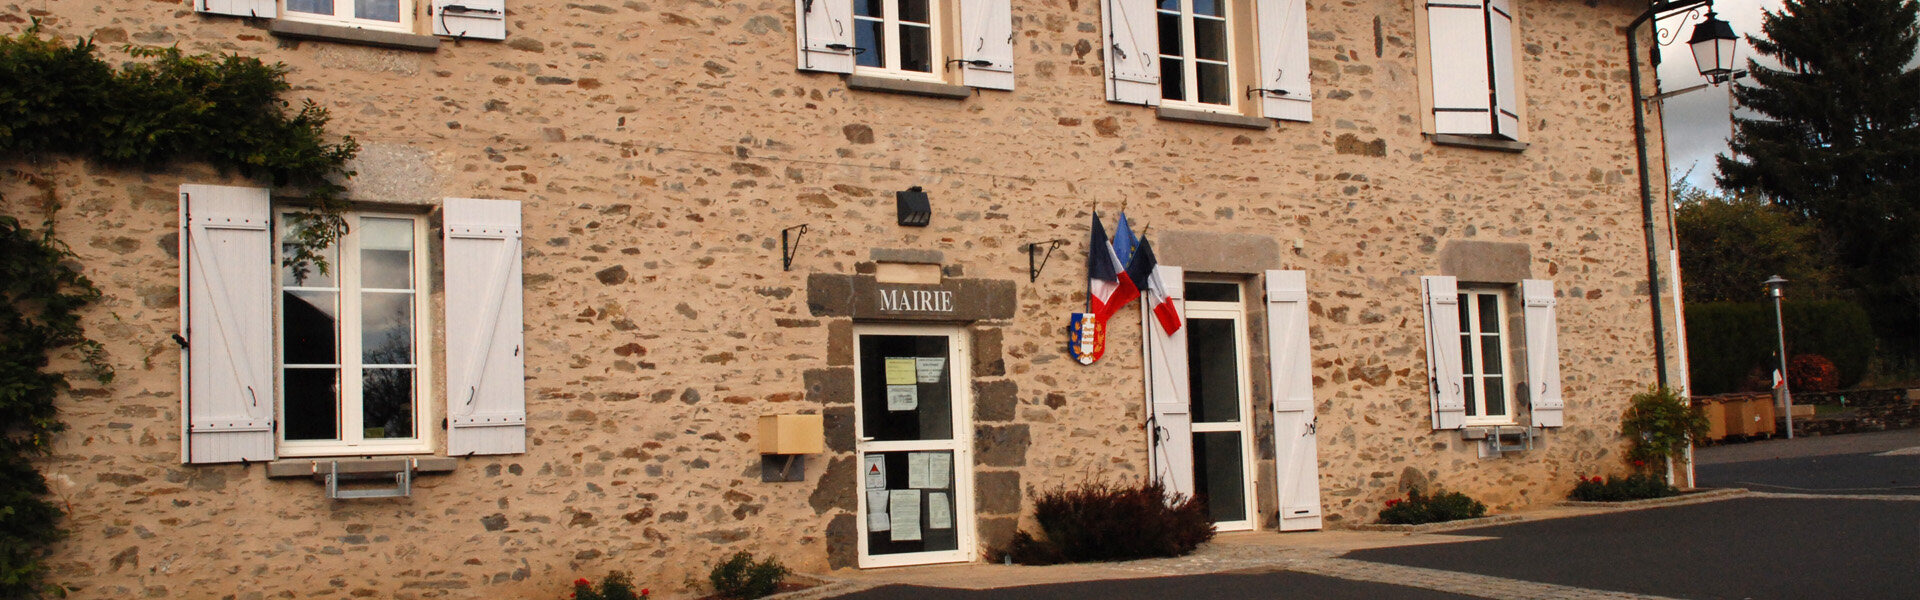 Commune de Roannes Saint-Mary - Cantal